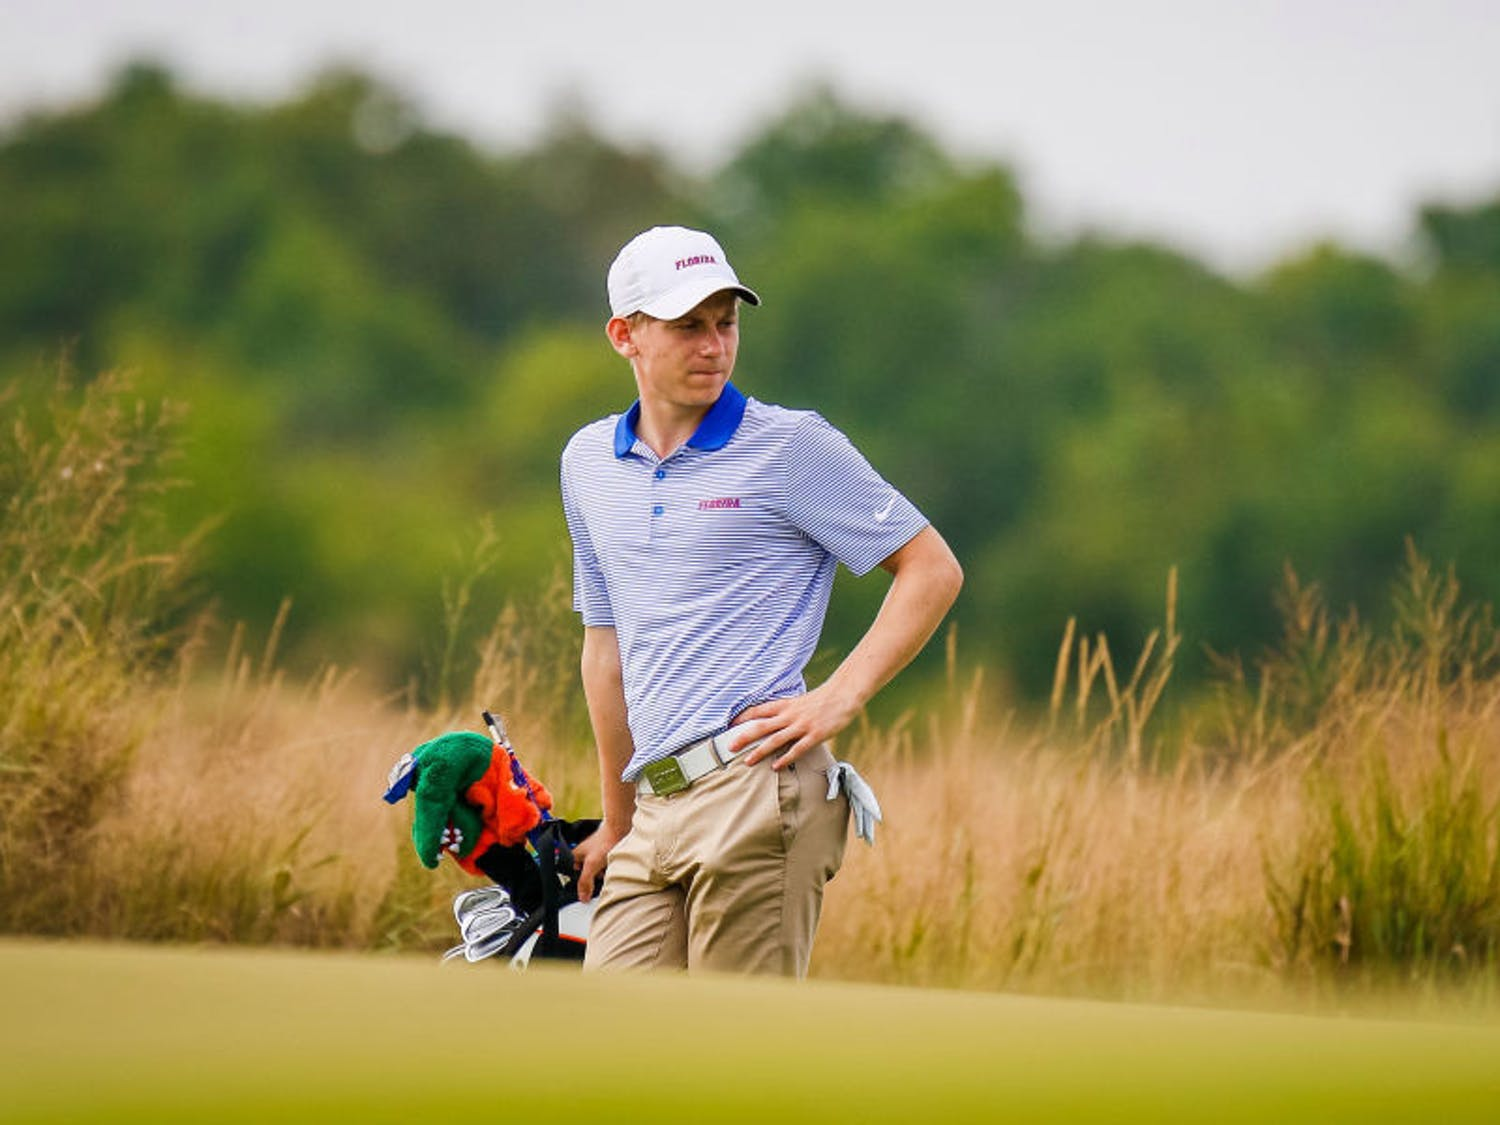 Sophomore John Axelsen led the Gators with a score of 4 over, tying him for 14th place on the first day of the Robert Kepler Intercollegiate.